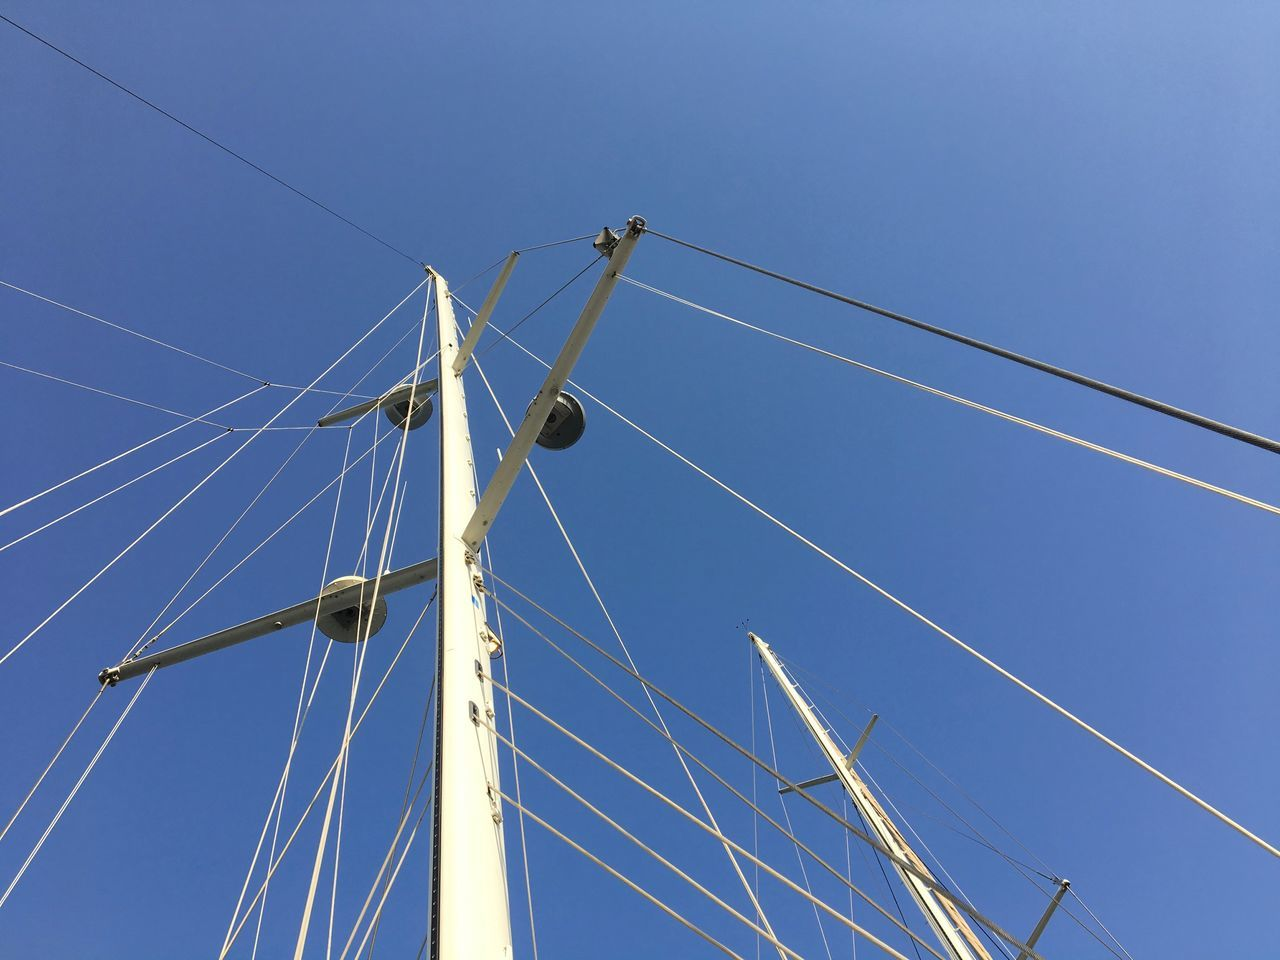 Blue Sky Boats⛵️ Clear Sky Day Lines Lines And Angles Looking Up Low Angle View No People Outdoors Sailing Sailing Boat Sailing Ship Sky